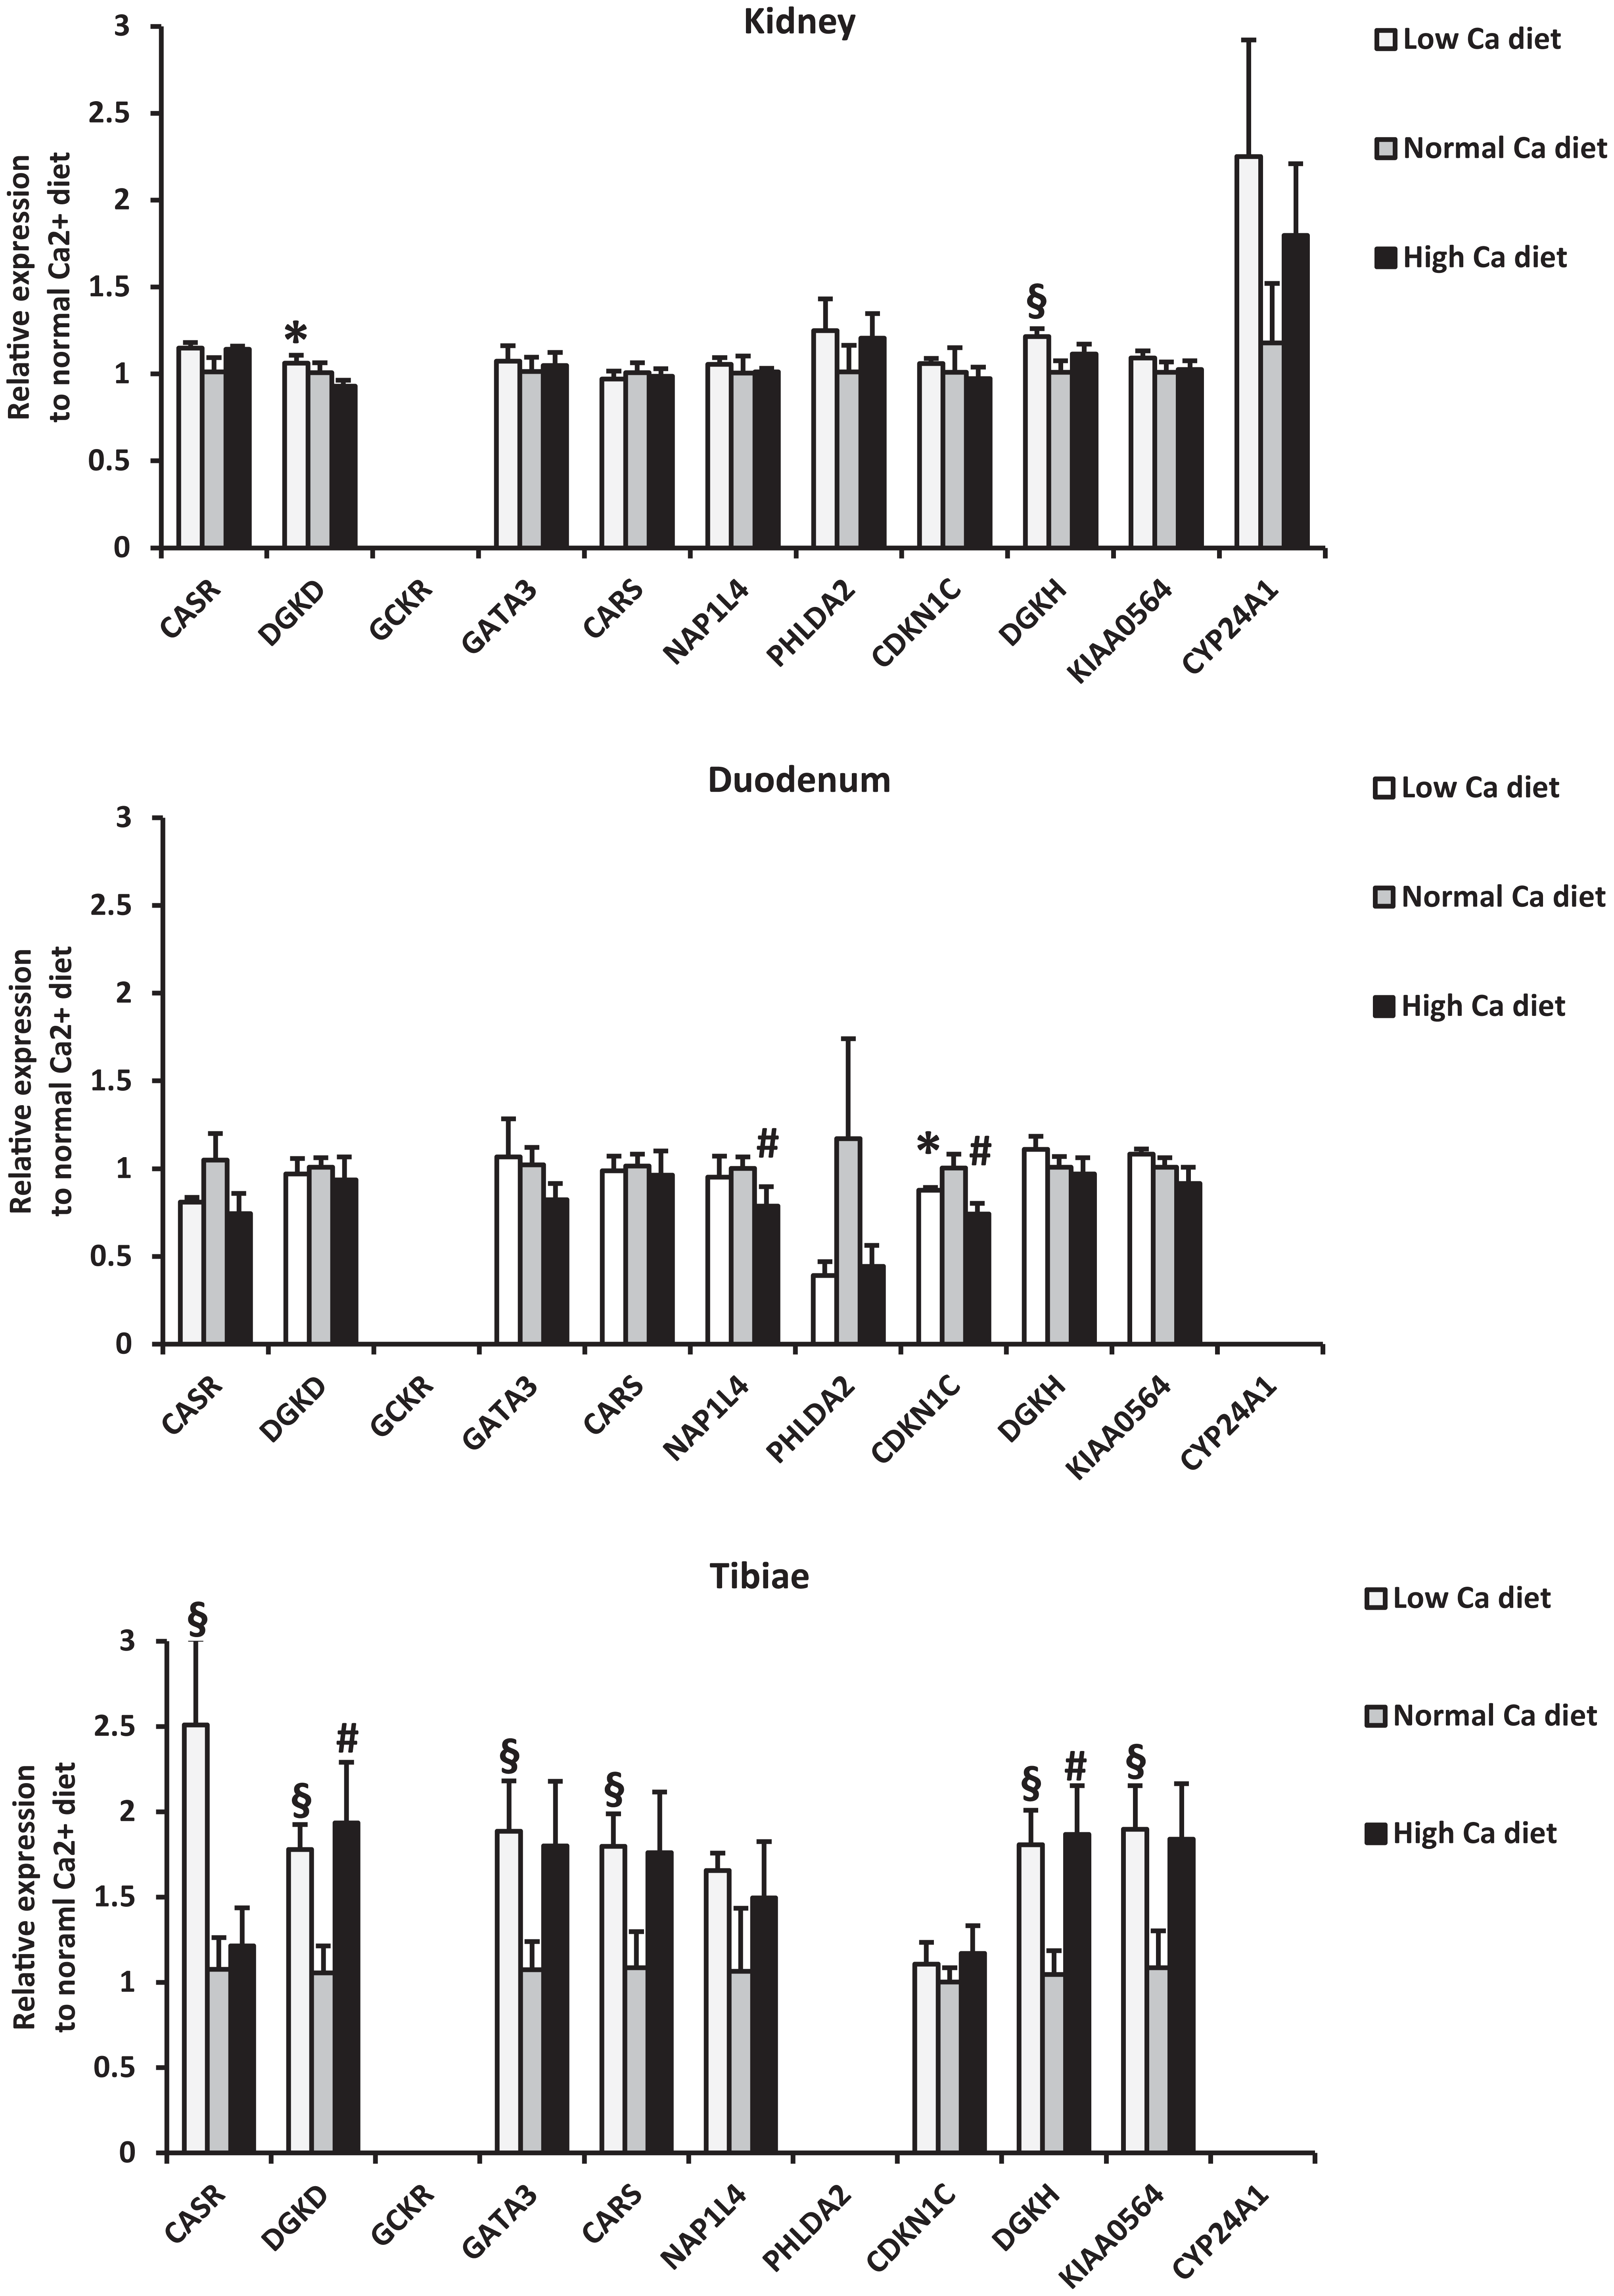 Relative mRNA expression of identified genes from mice fed a low (0.17%) and high (1.69%) calcium diet compared to mice fed a normal calcium diet (0.82%).